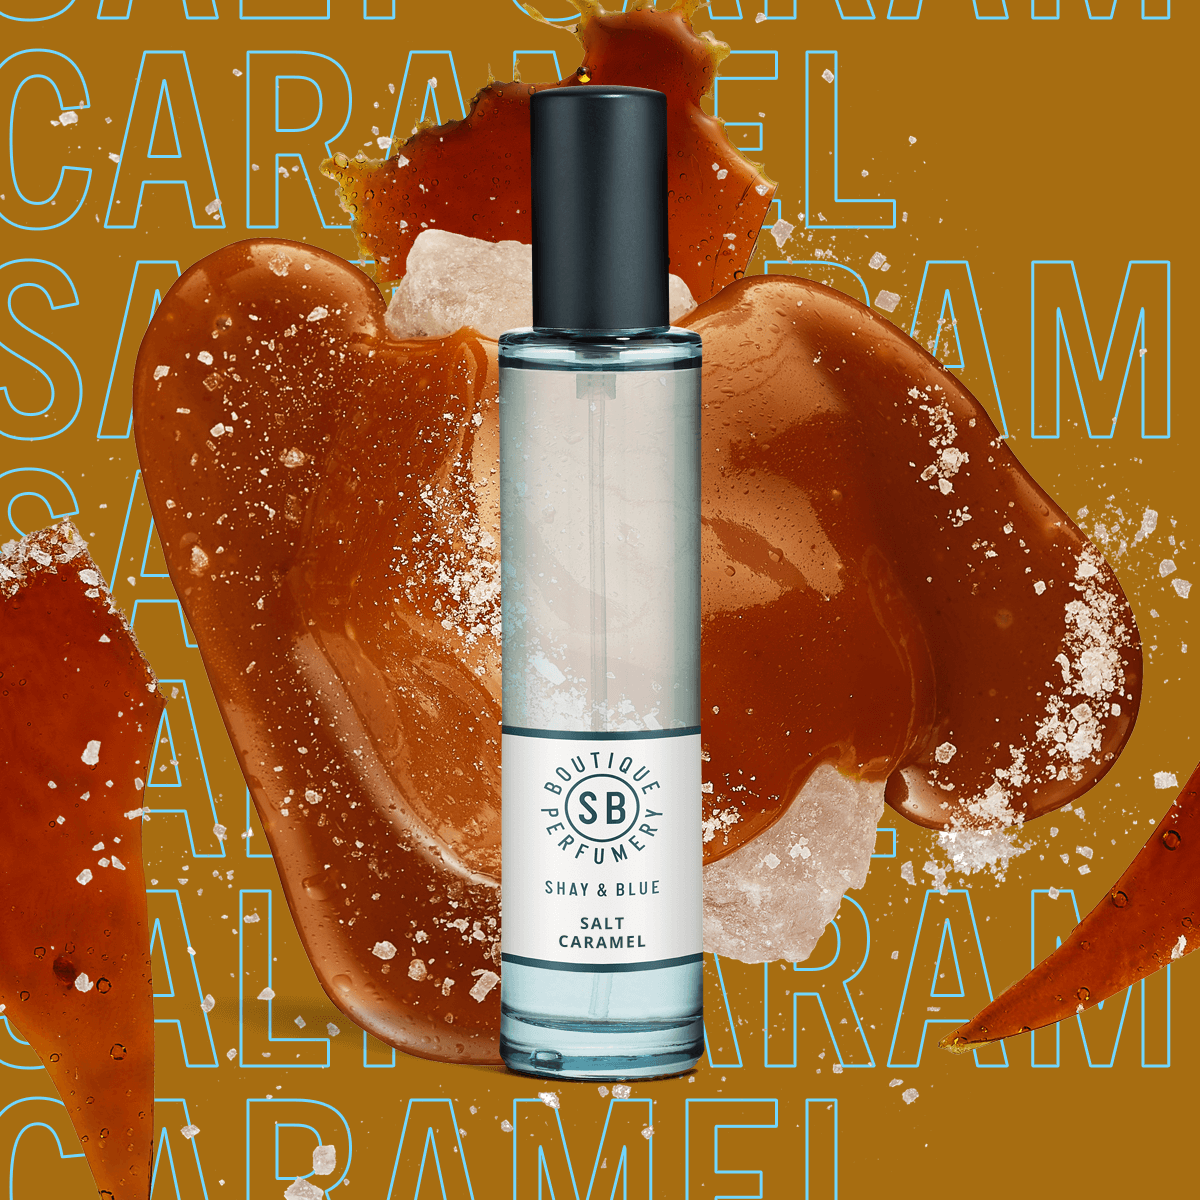 Salt Caramel Fragrance 30ml | Glossy caramel, tonka bean and soft sandalwood meld into deliciously frothy sea salt. | Clean All Gender Fragrance | Shay & Blue